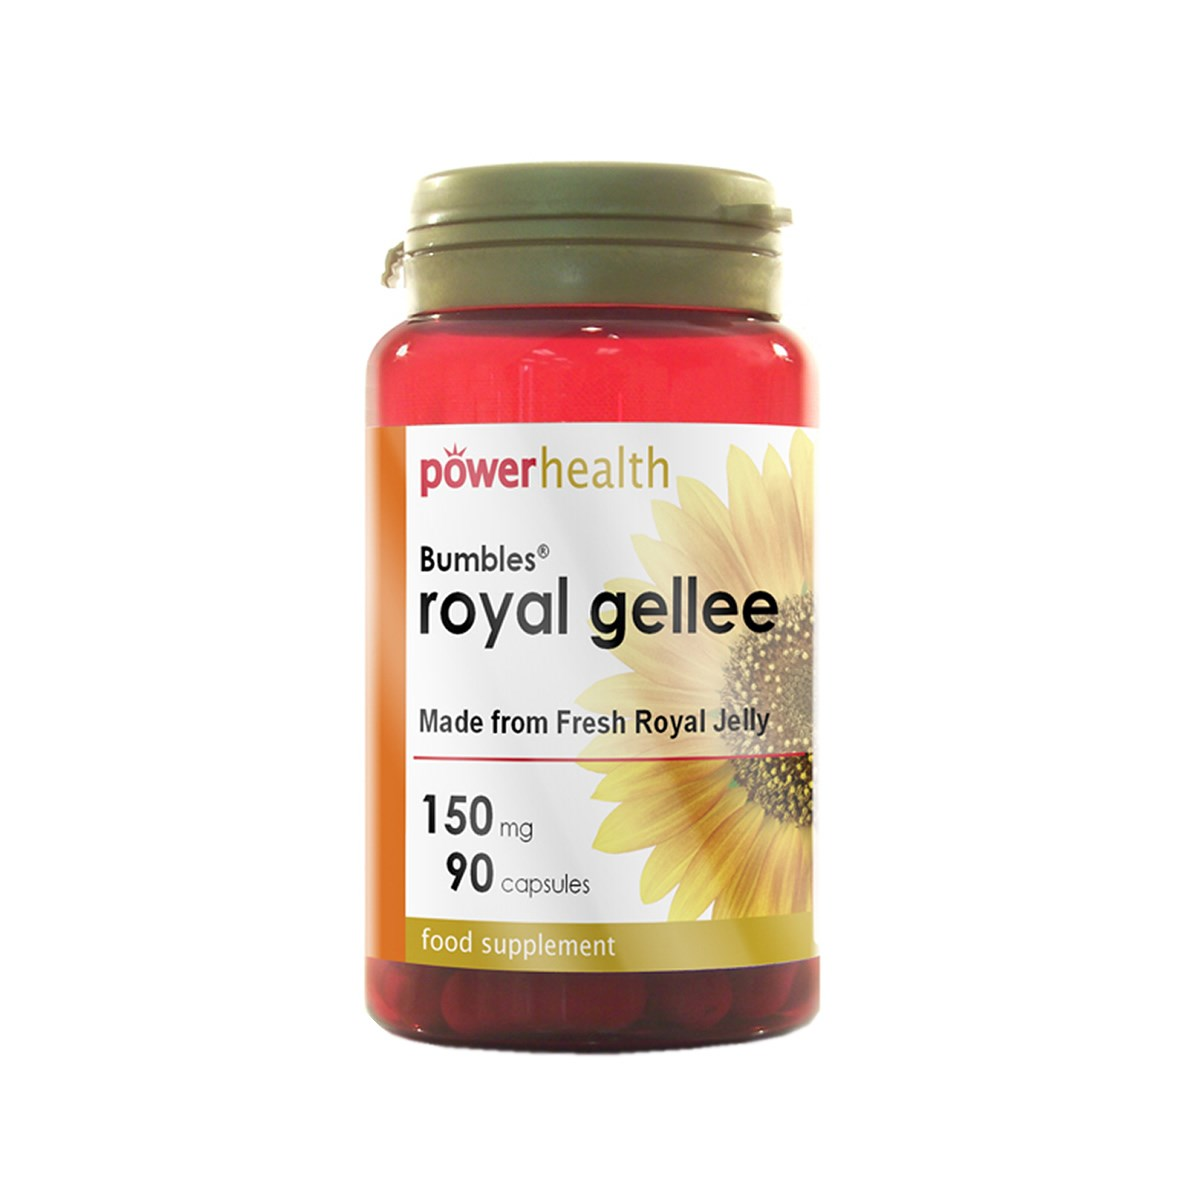 Power Health Bumbles Royal Gellee 150mg Capsules